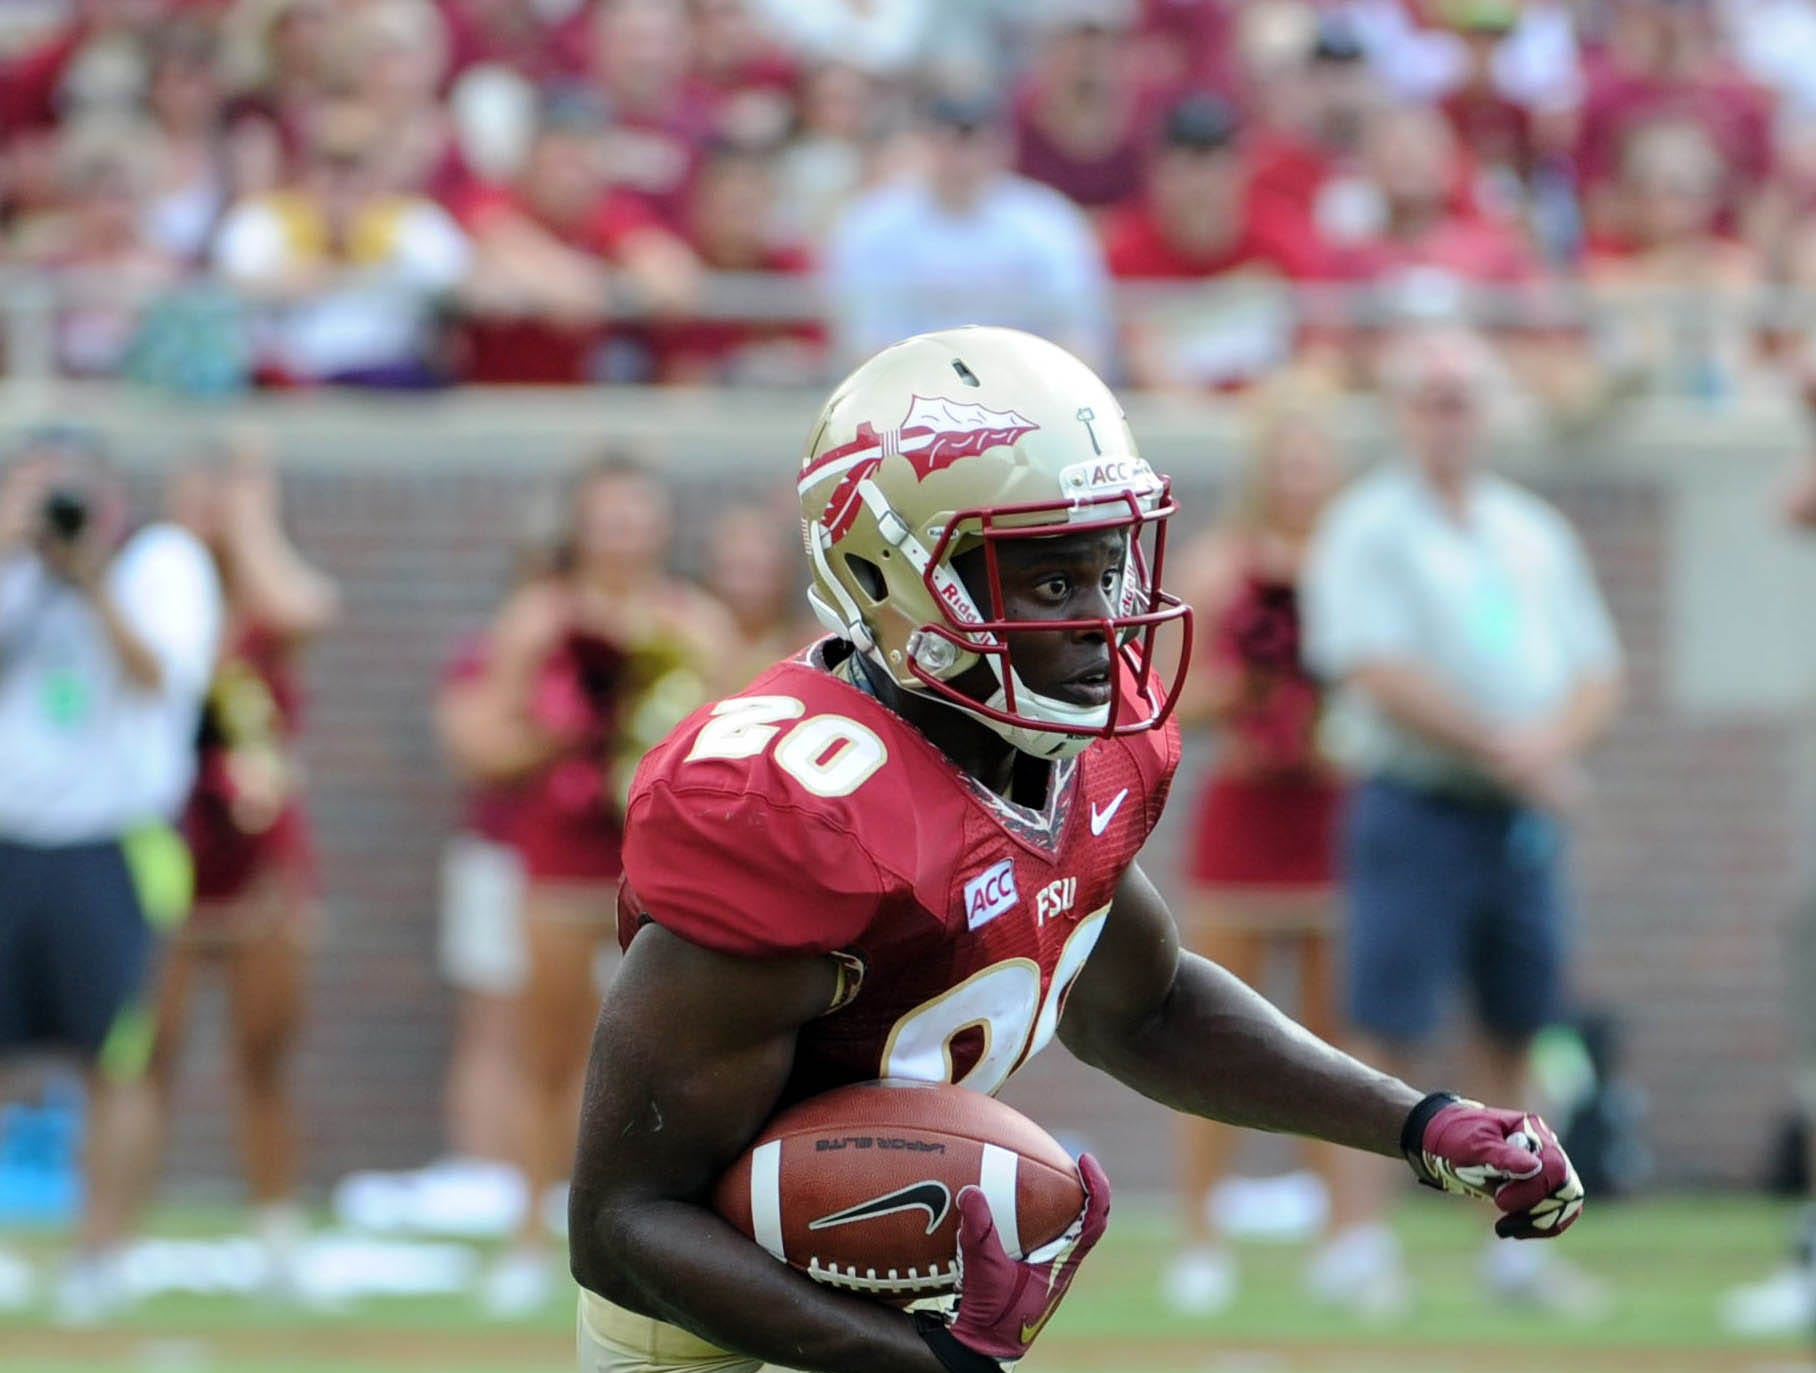 Sep 14, 2013; Tallahassee, FL, USA; Florida State Seminoles defensive back Lamarcus Joyner (20) runs the ball during the first half of the game against the Nevada Wolf Pack at Doak Campbell Stadium. Mandatory Credit: Melina Vastola-USA TODAY Sports